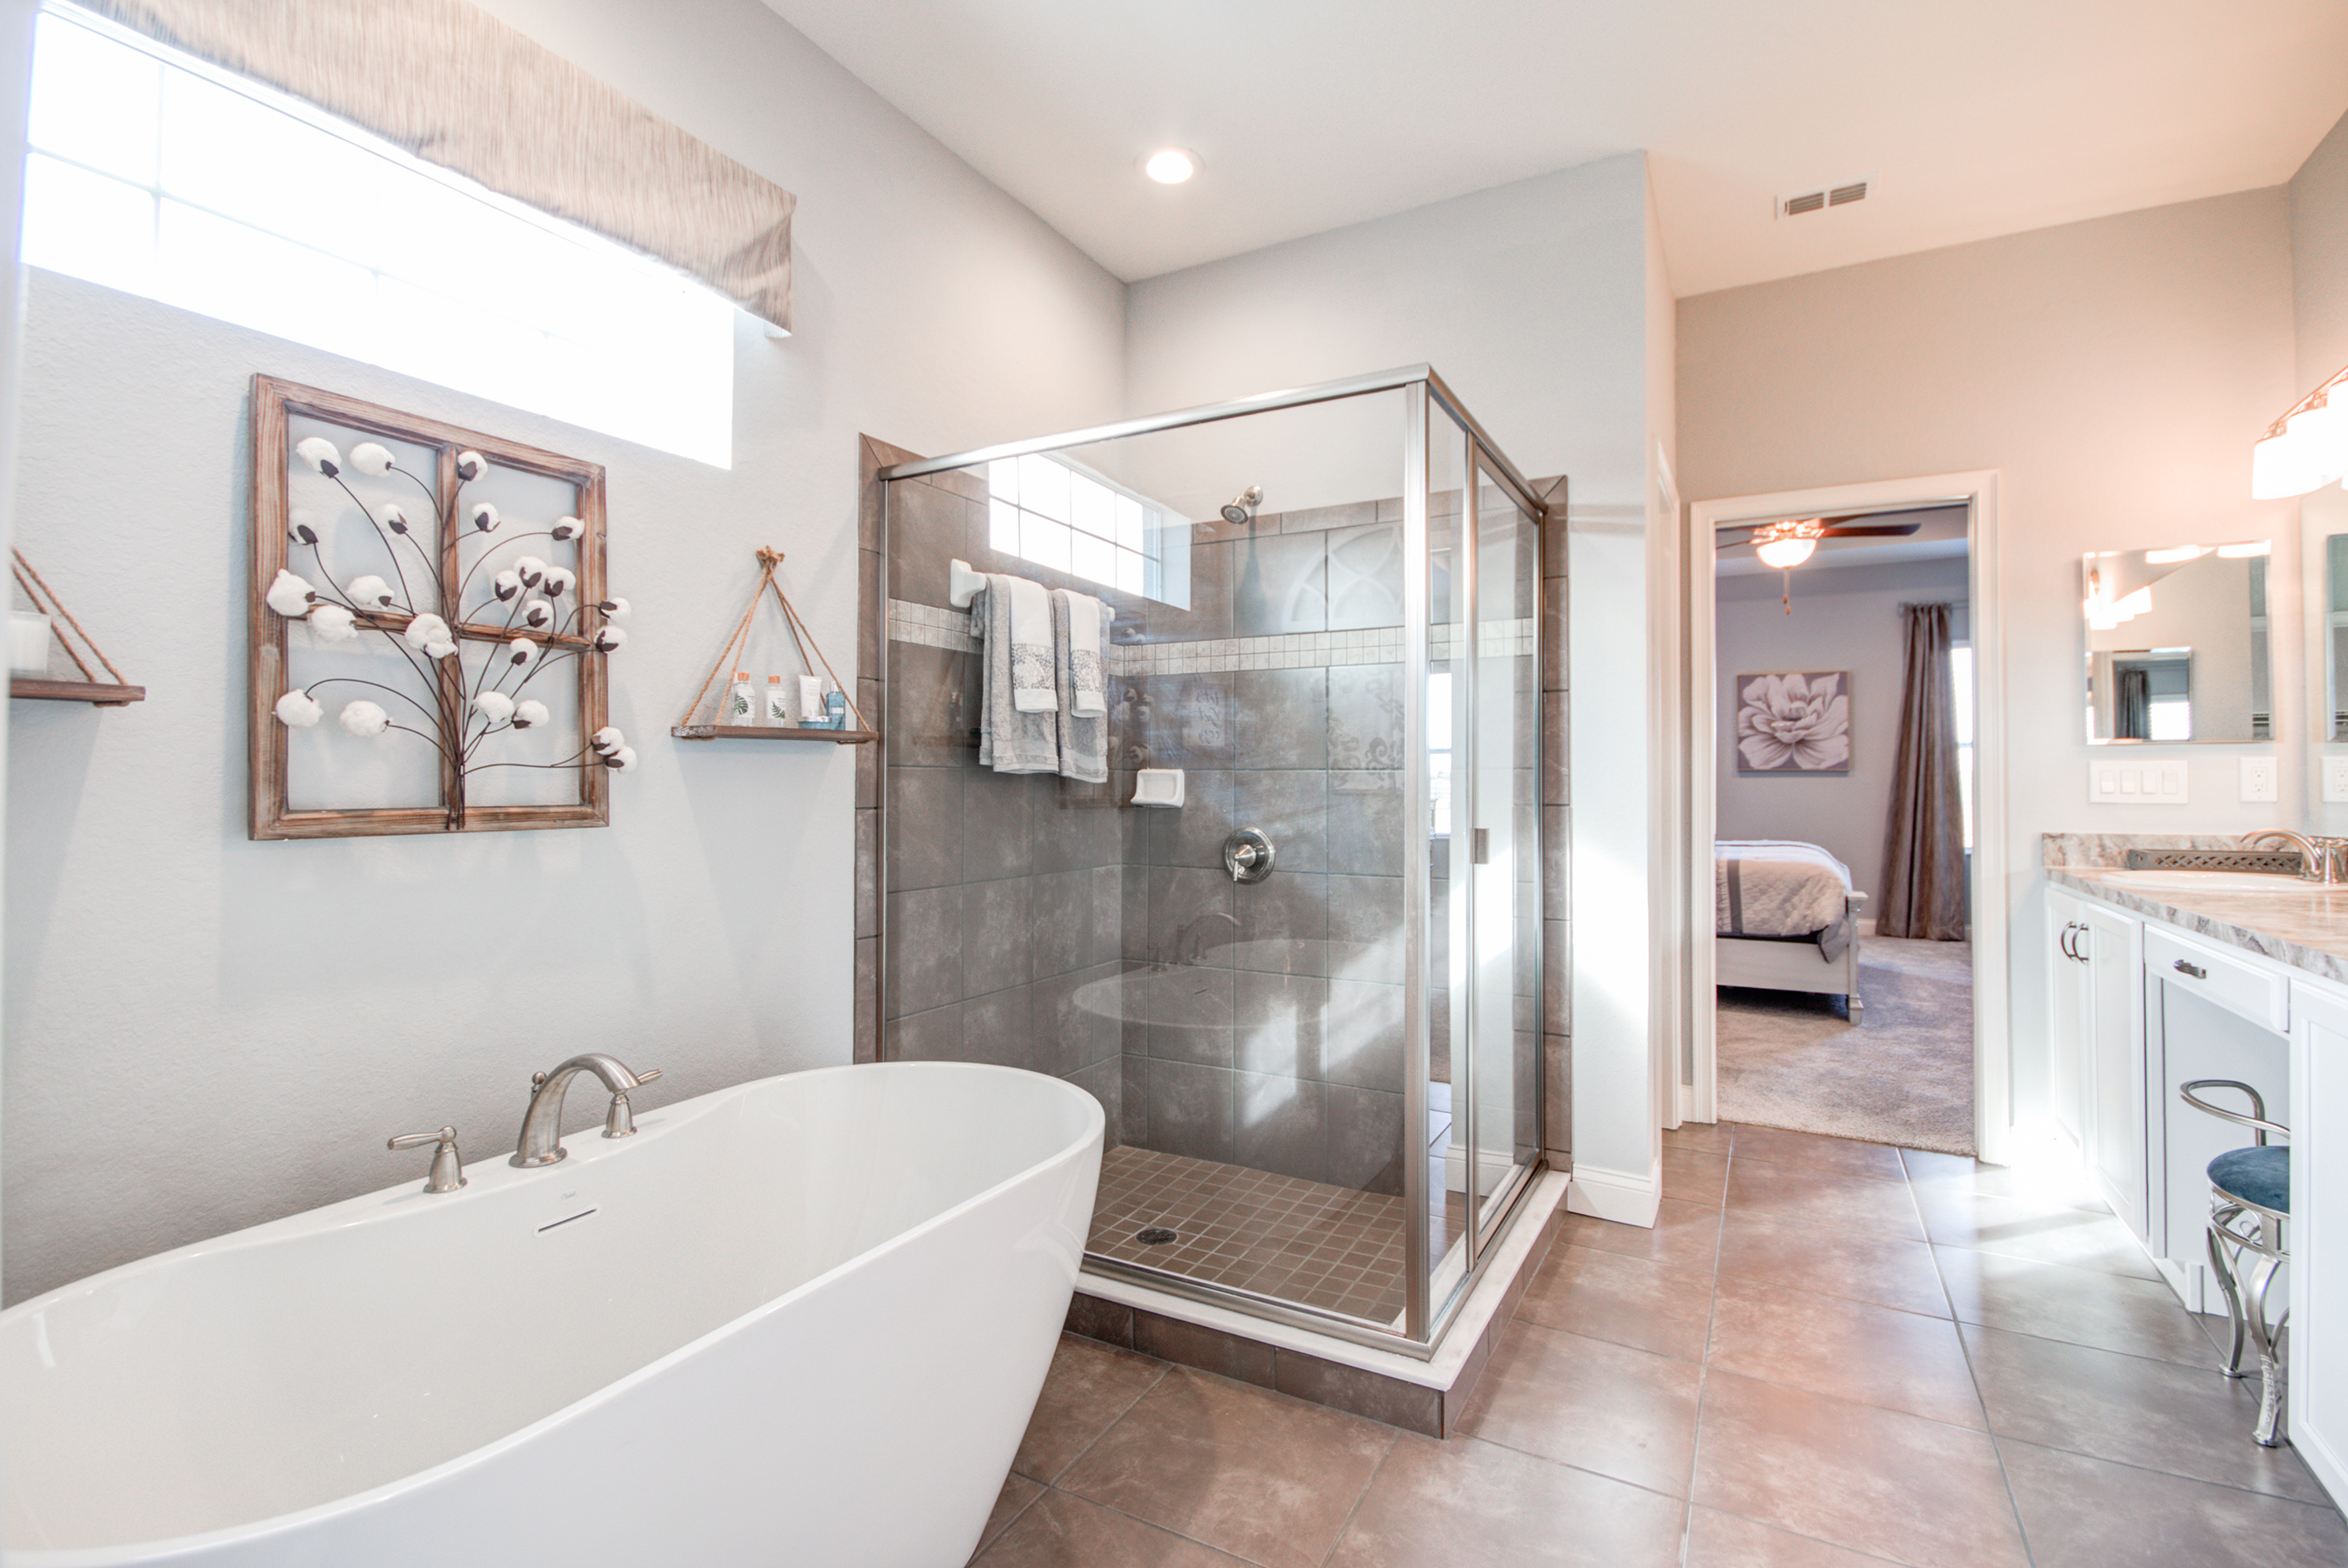 Highland Homes offers a wide variety of unique options for their kitchens and bathrooms